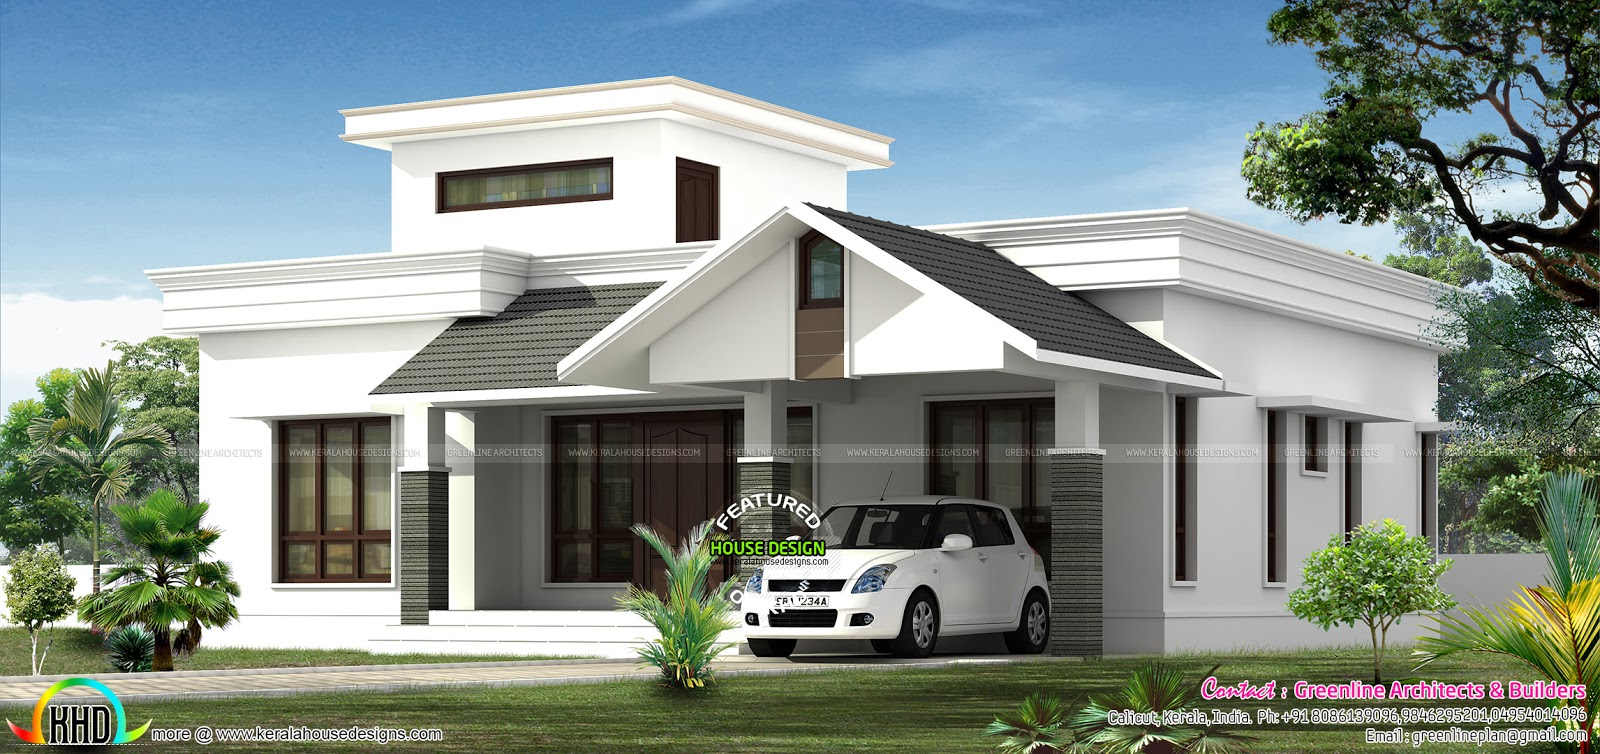 Low budjet single floor house design two side views for Single floor house